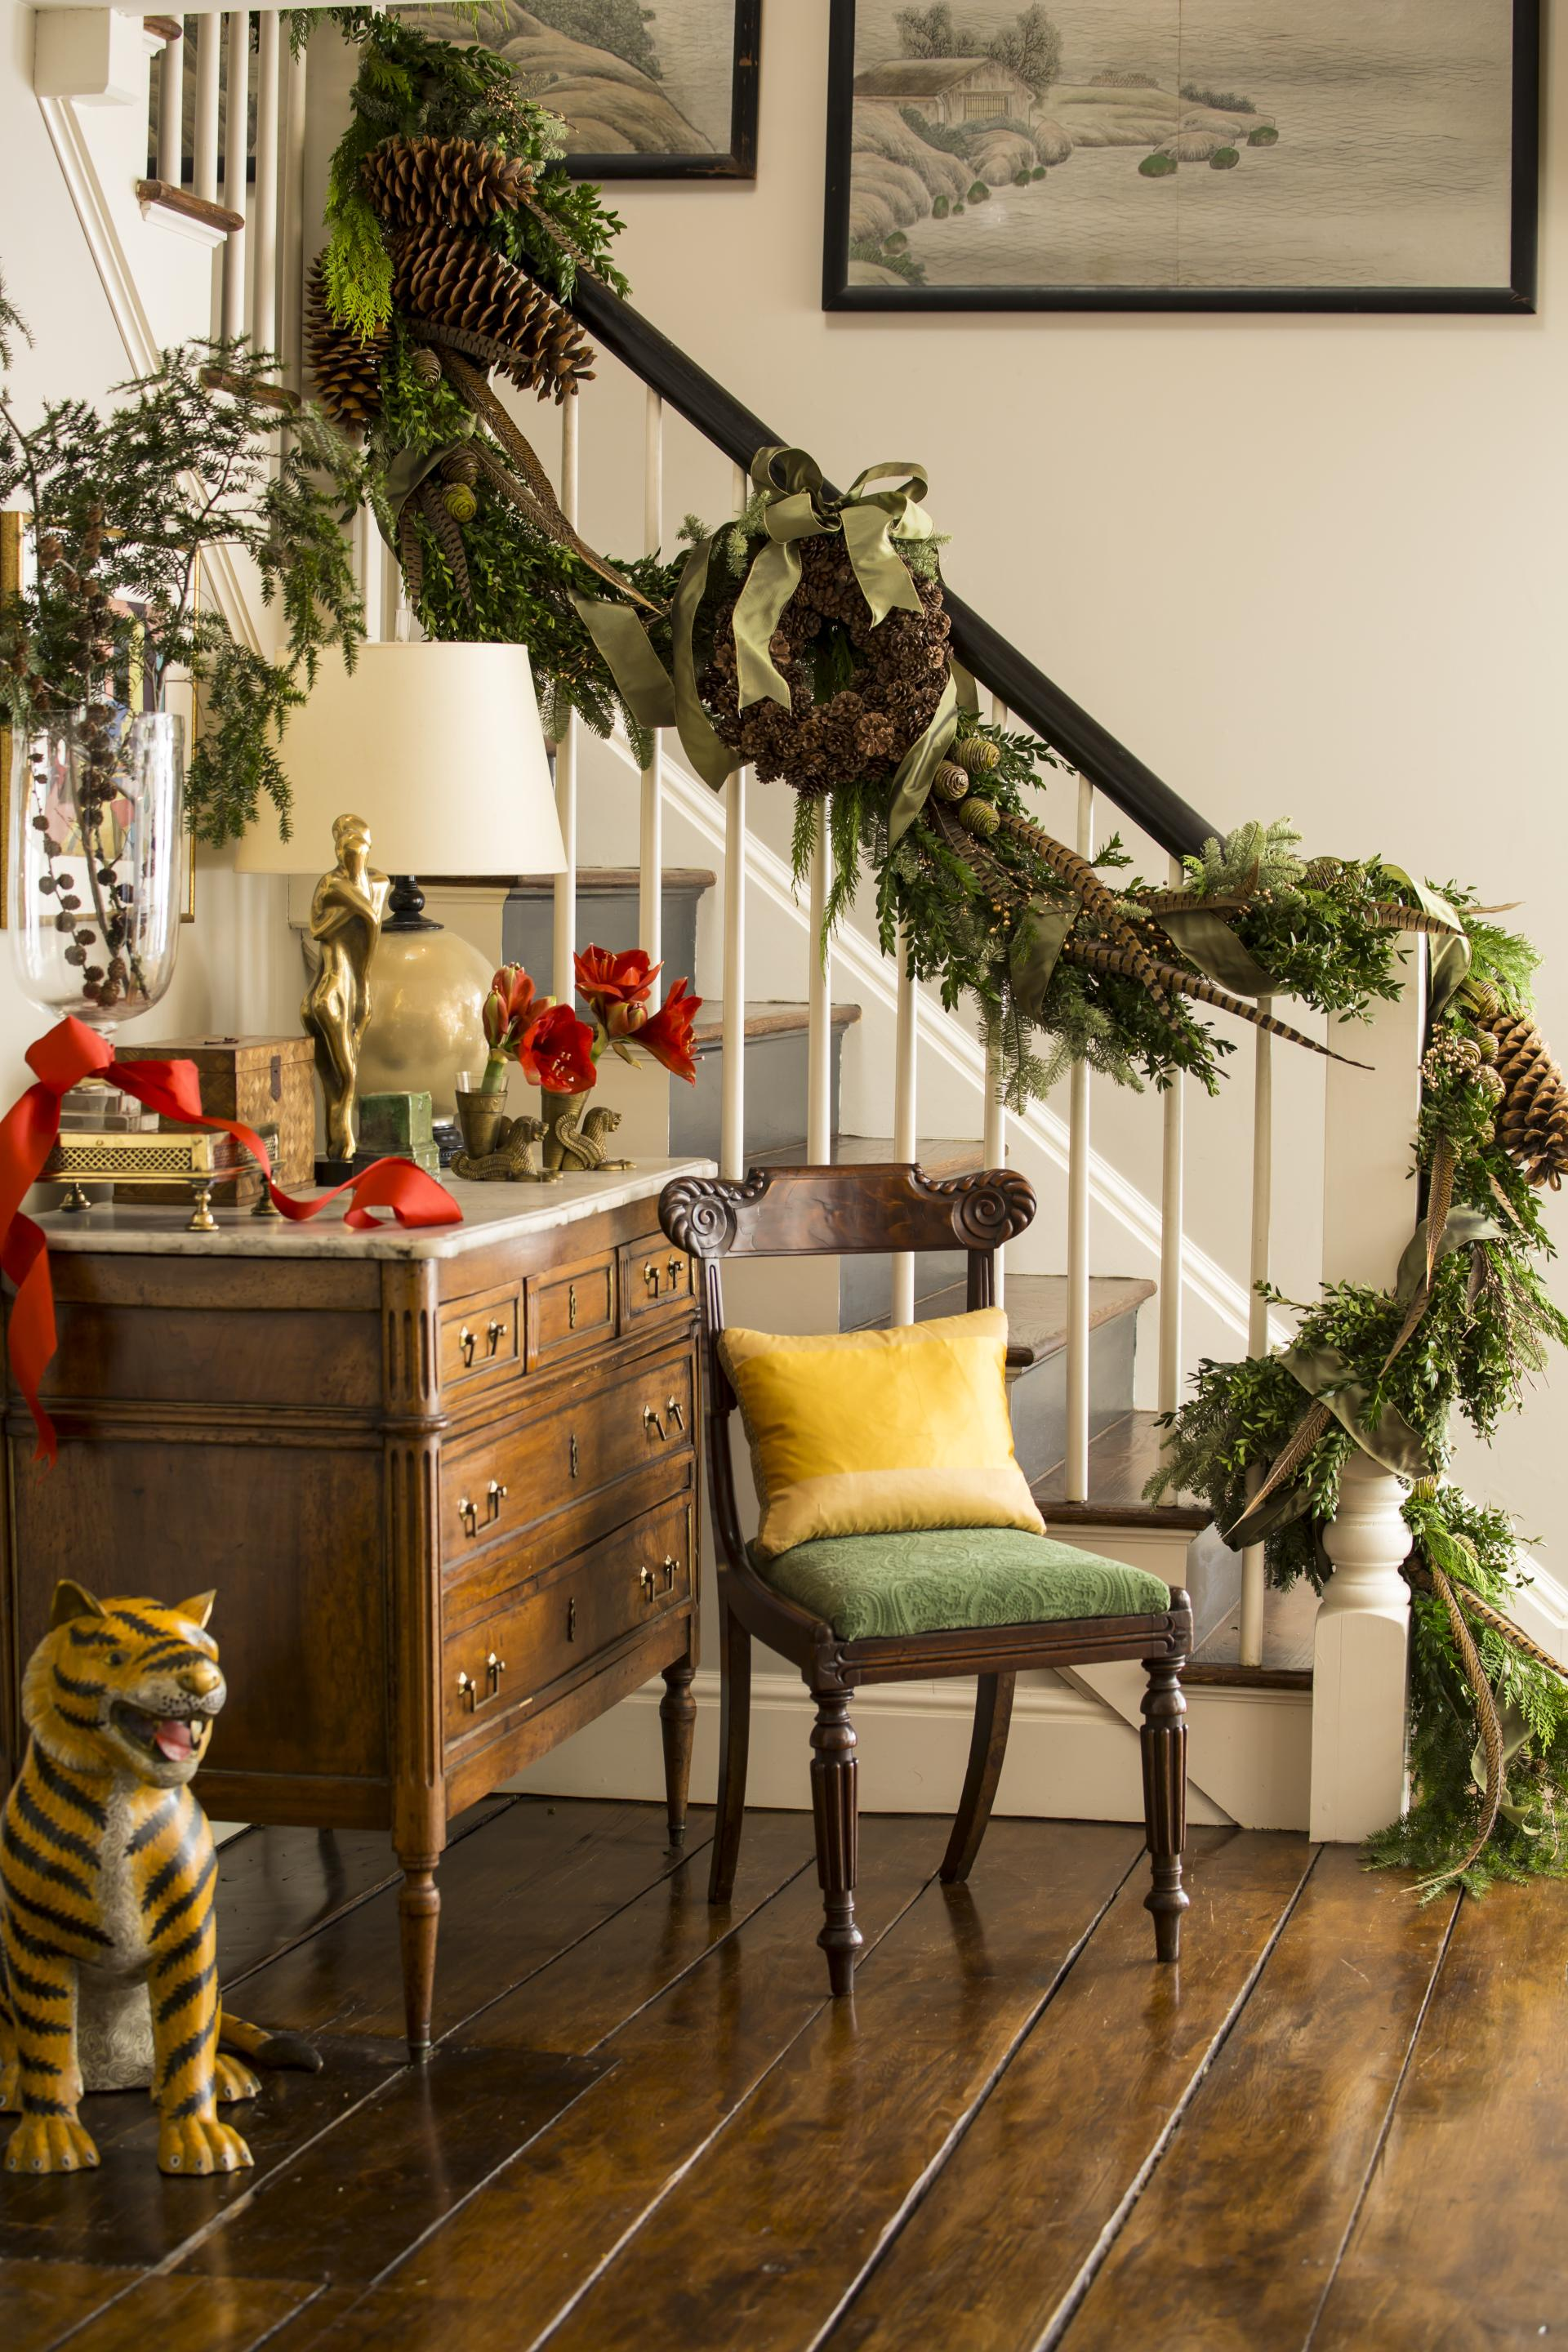 fresh greenery entwined with pheasant feathers pine cones and green ribbon adorn the banister of this stairway you can find the festive red with accents - Decorating Banisters For Christmas With Ribbon